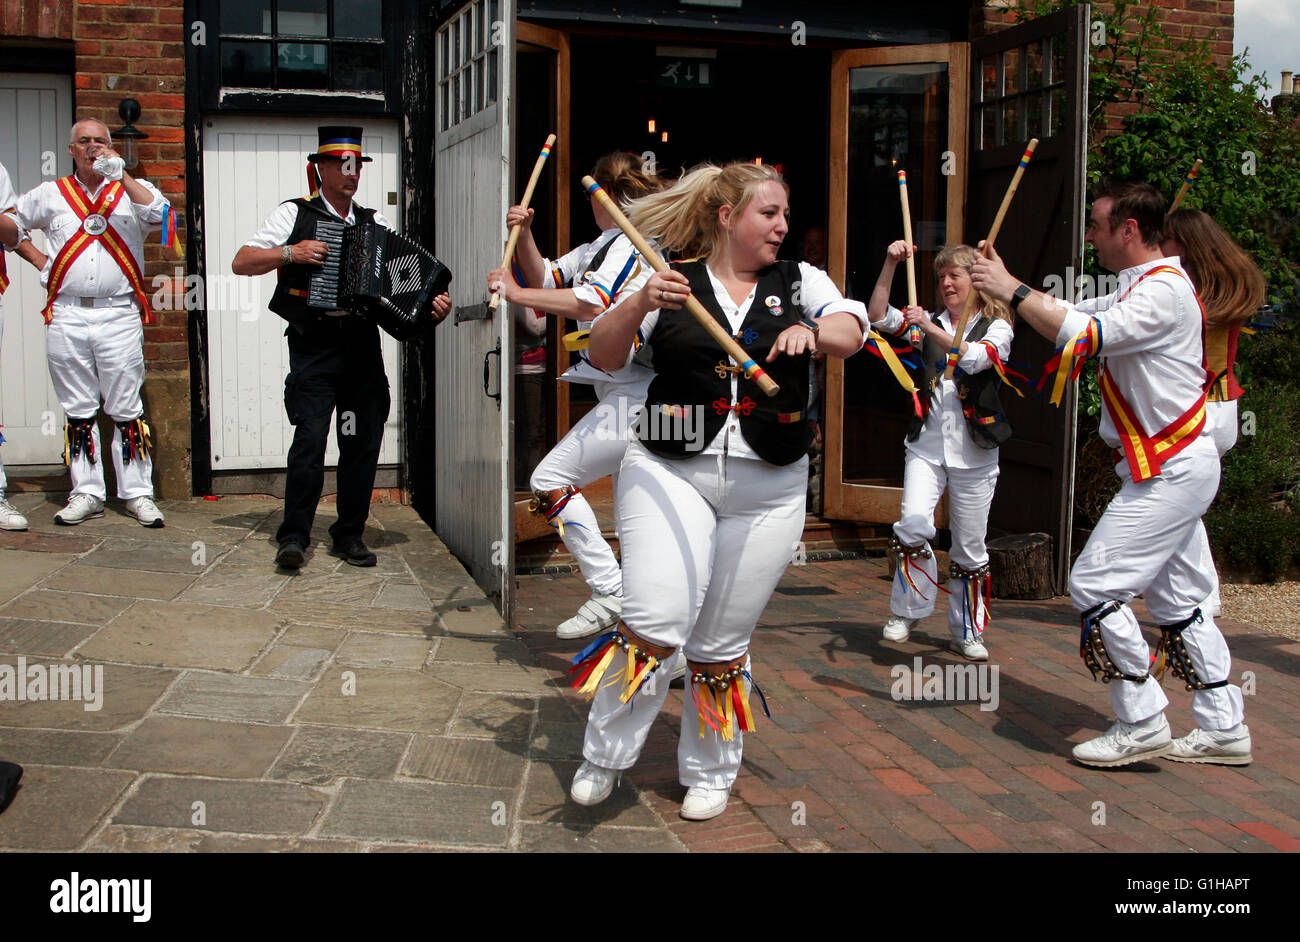 Morris dancers and musicians perform outside the Bell pub in Ticehurst, East Sussex, Britain May 15, 2016. Copyright - Stock Image